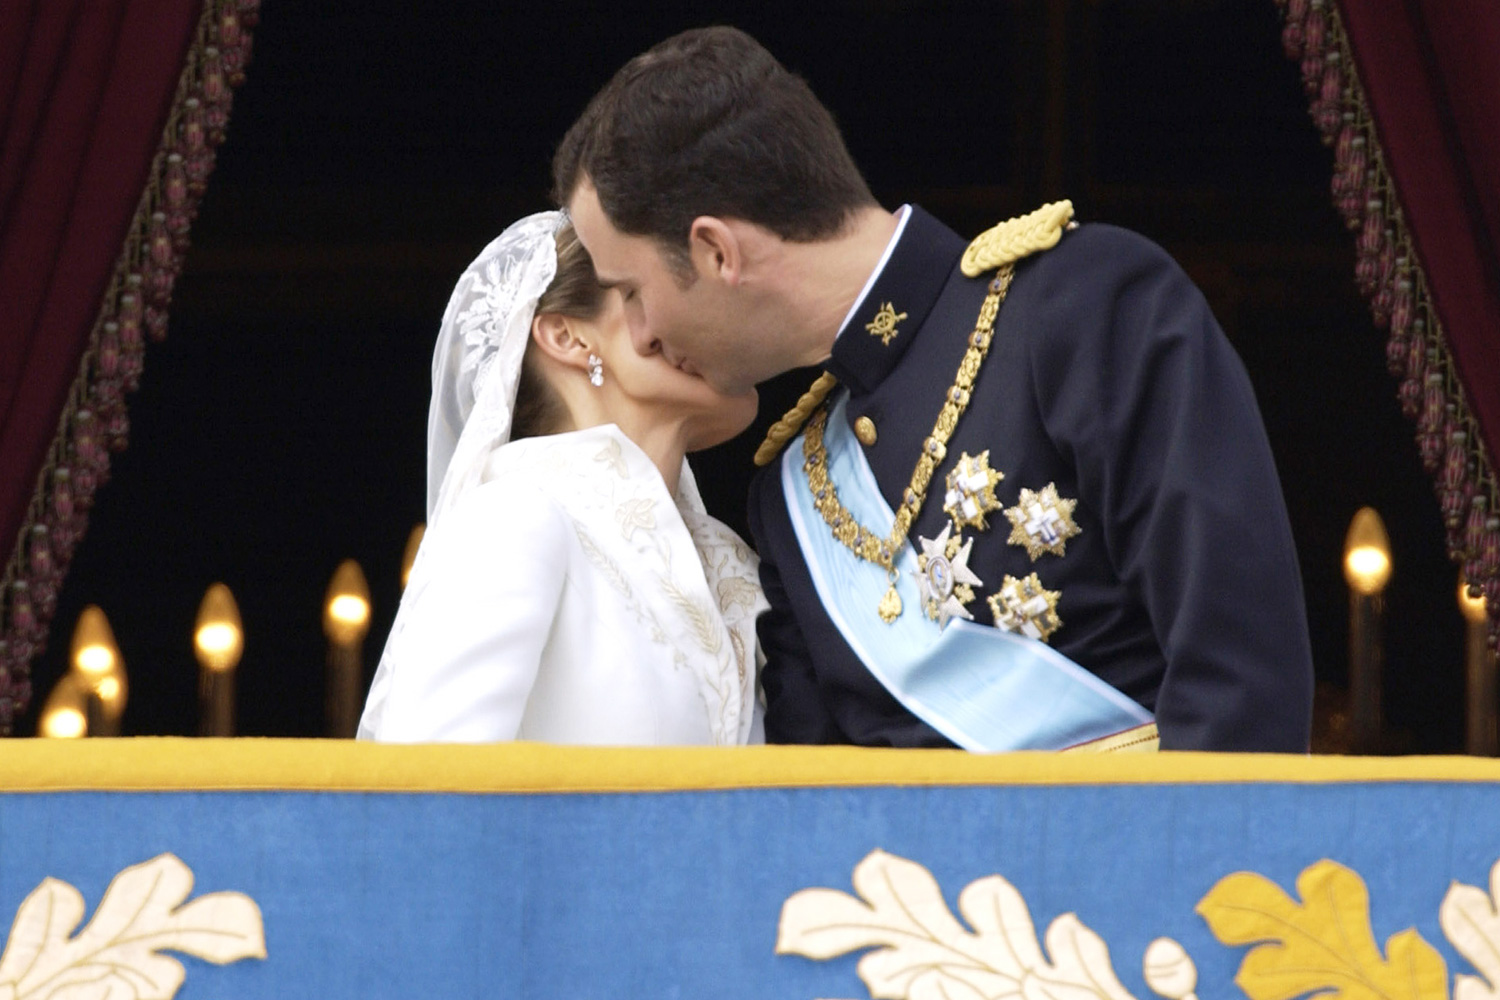 The Wedding Of Crown Prince Felipe Of Spain & Letizia Ortiz Rocasolano In Madrid.